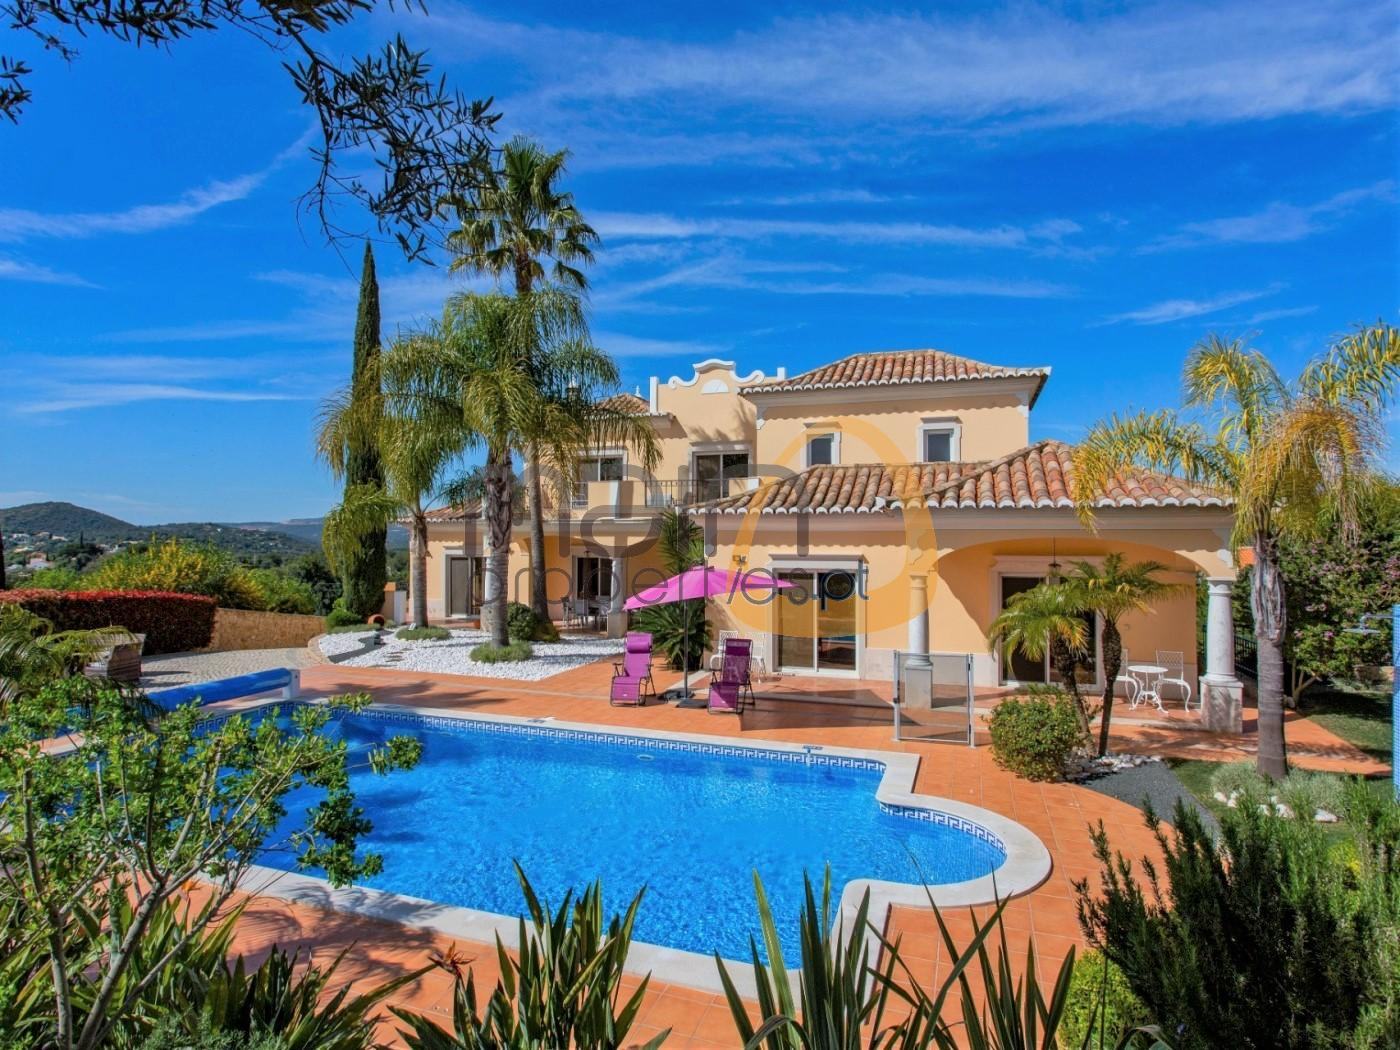 6 bedroom villa, private pool and sea view in Loulé